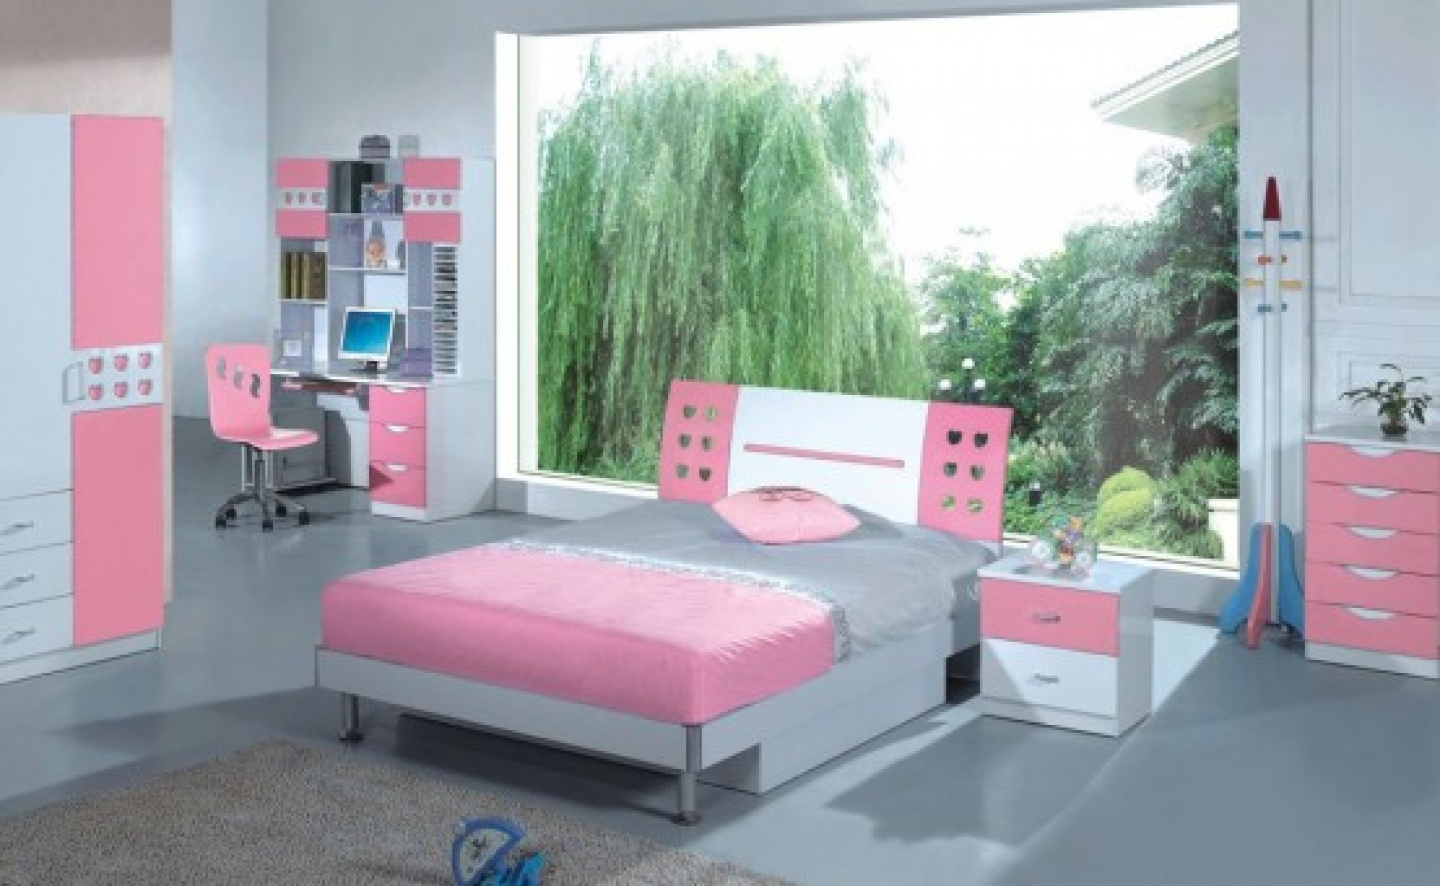 Witching Pink Teenage Bedroom Ideas With Nature Background And Cute Stuffs